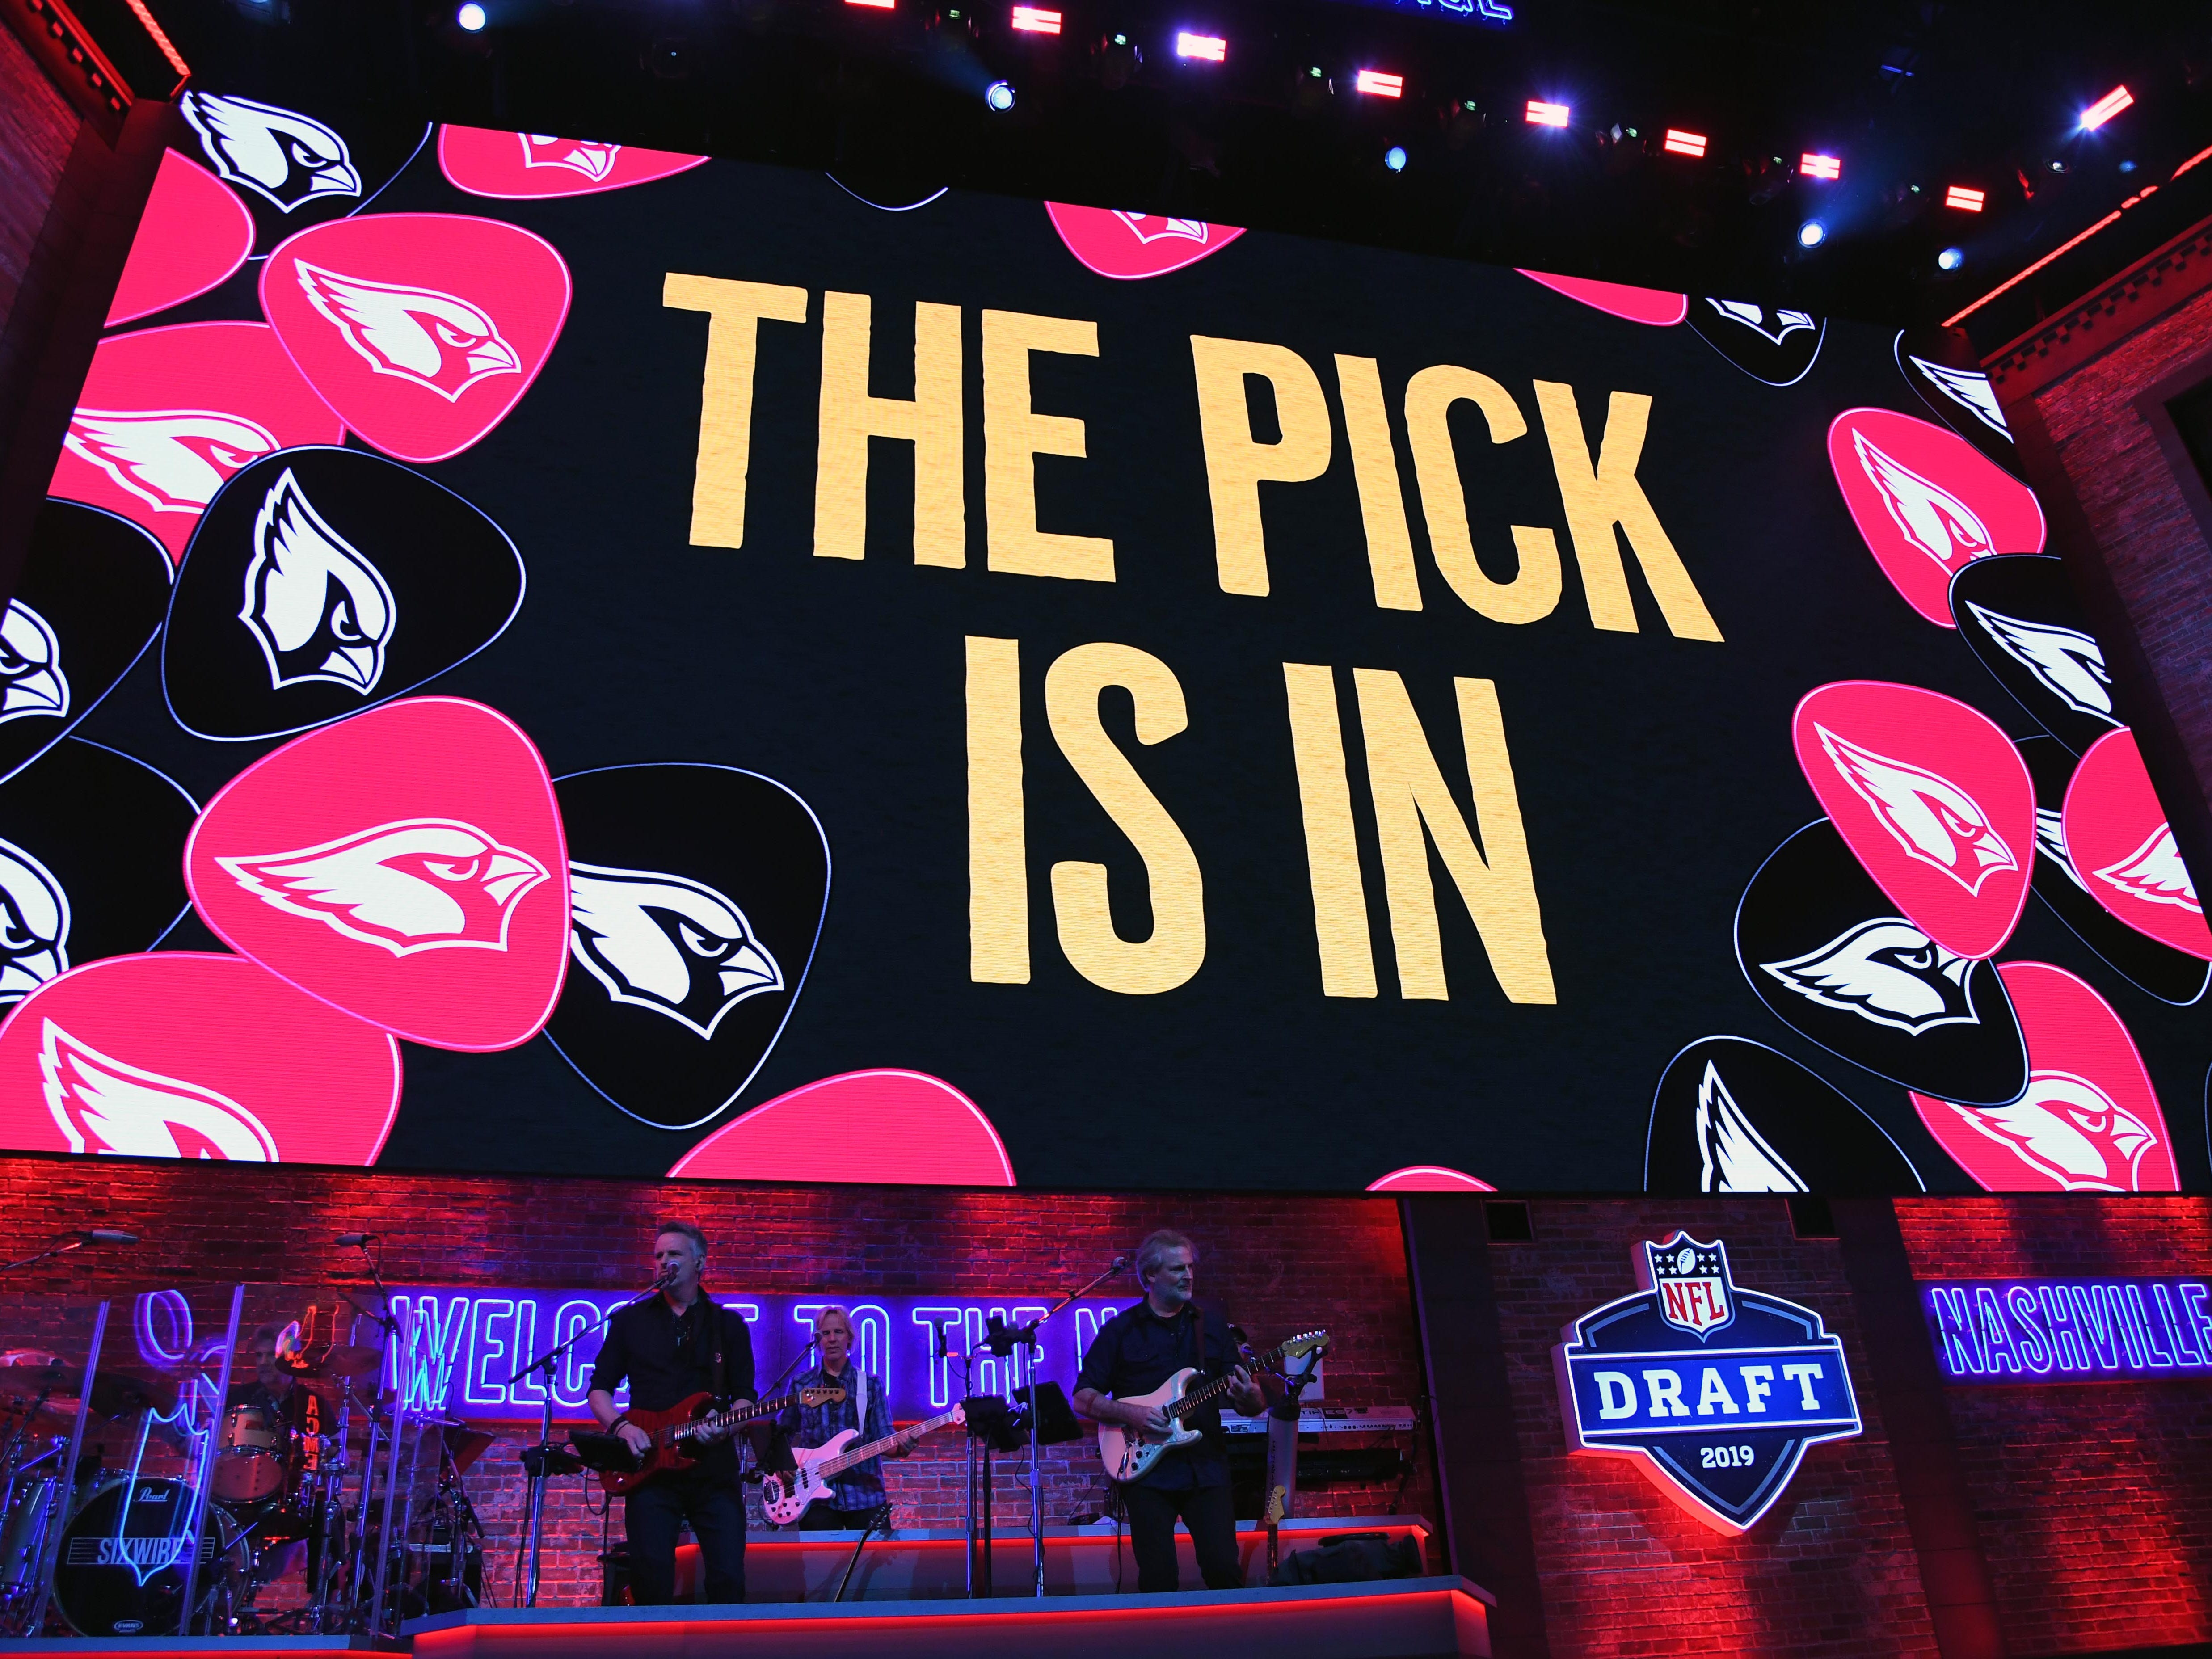 """""""The Pick Is In"""" graphic appears during the first round of the 2019 NFL draft."""